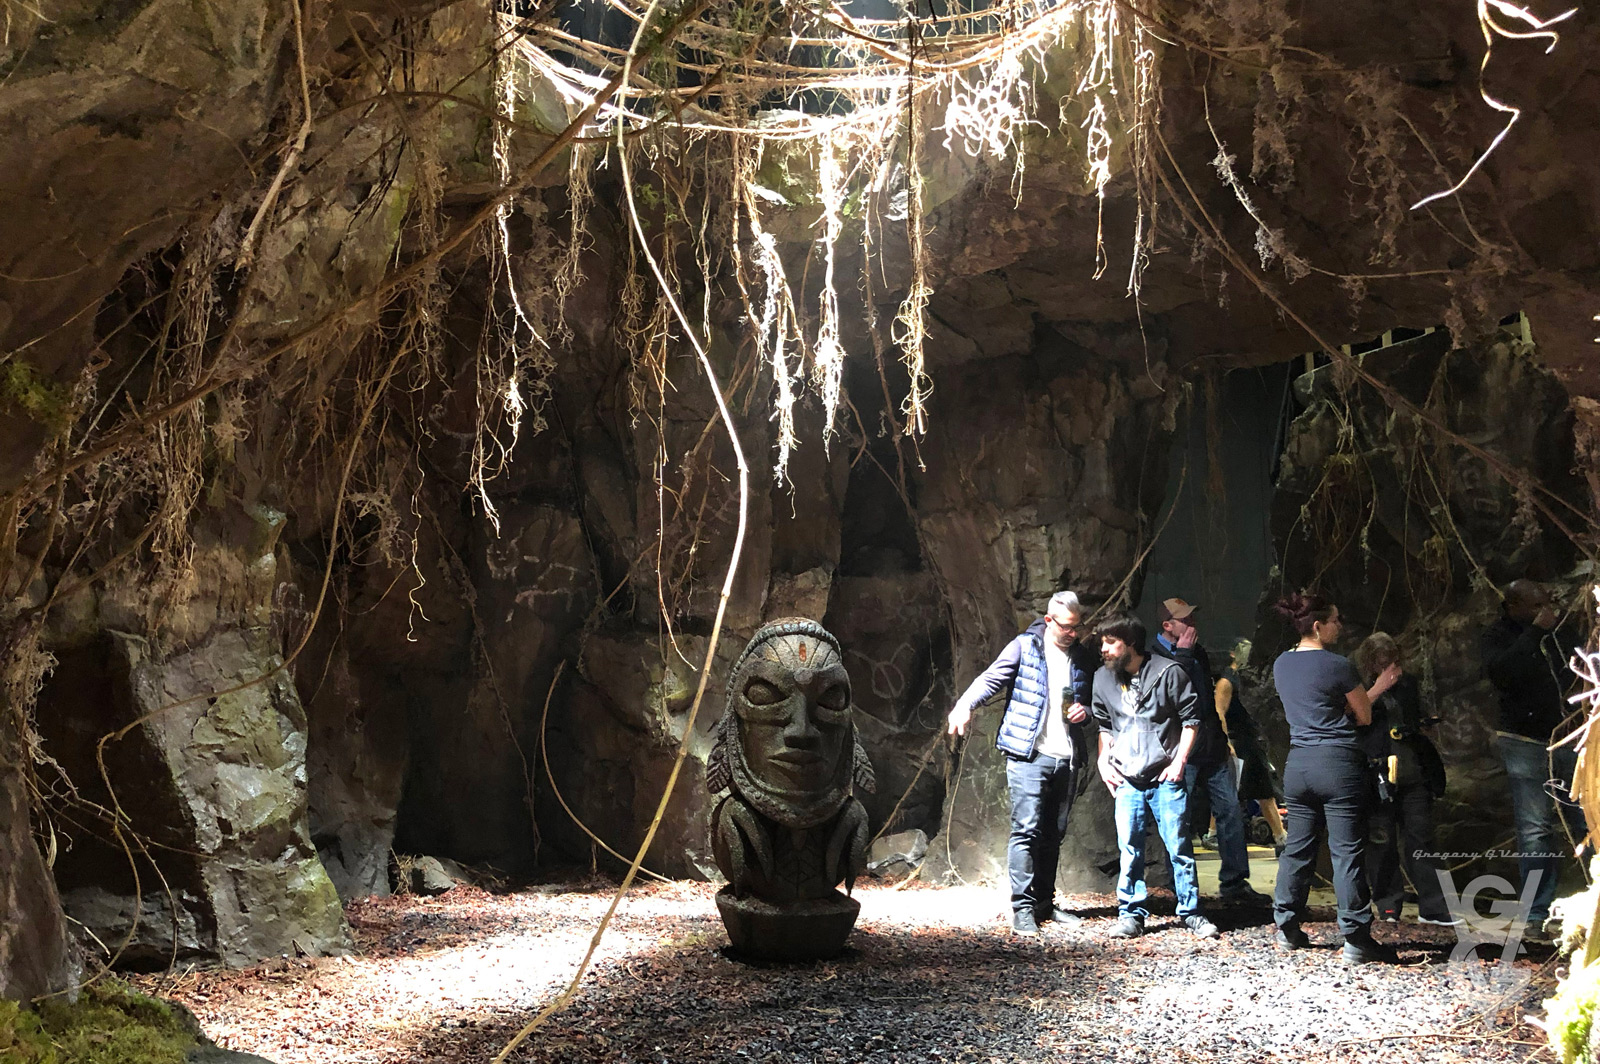 CHARMED: S1 - JUNGLE CAVE SET - SET PHOTO